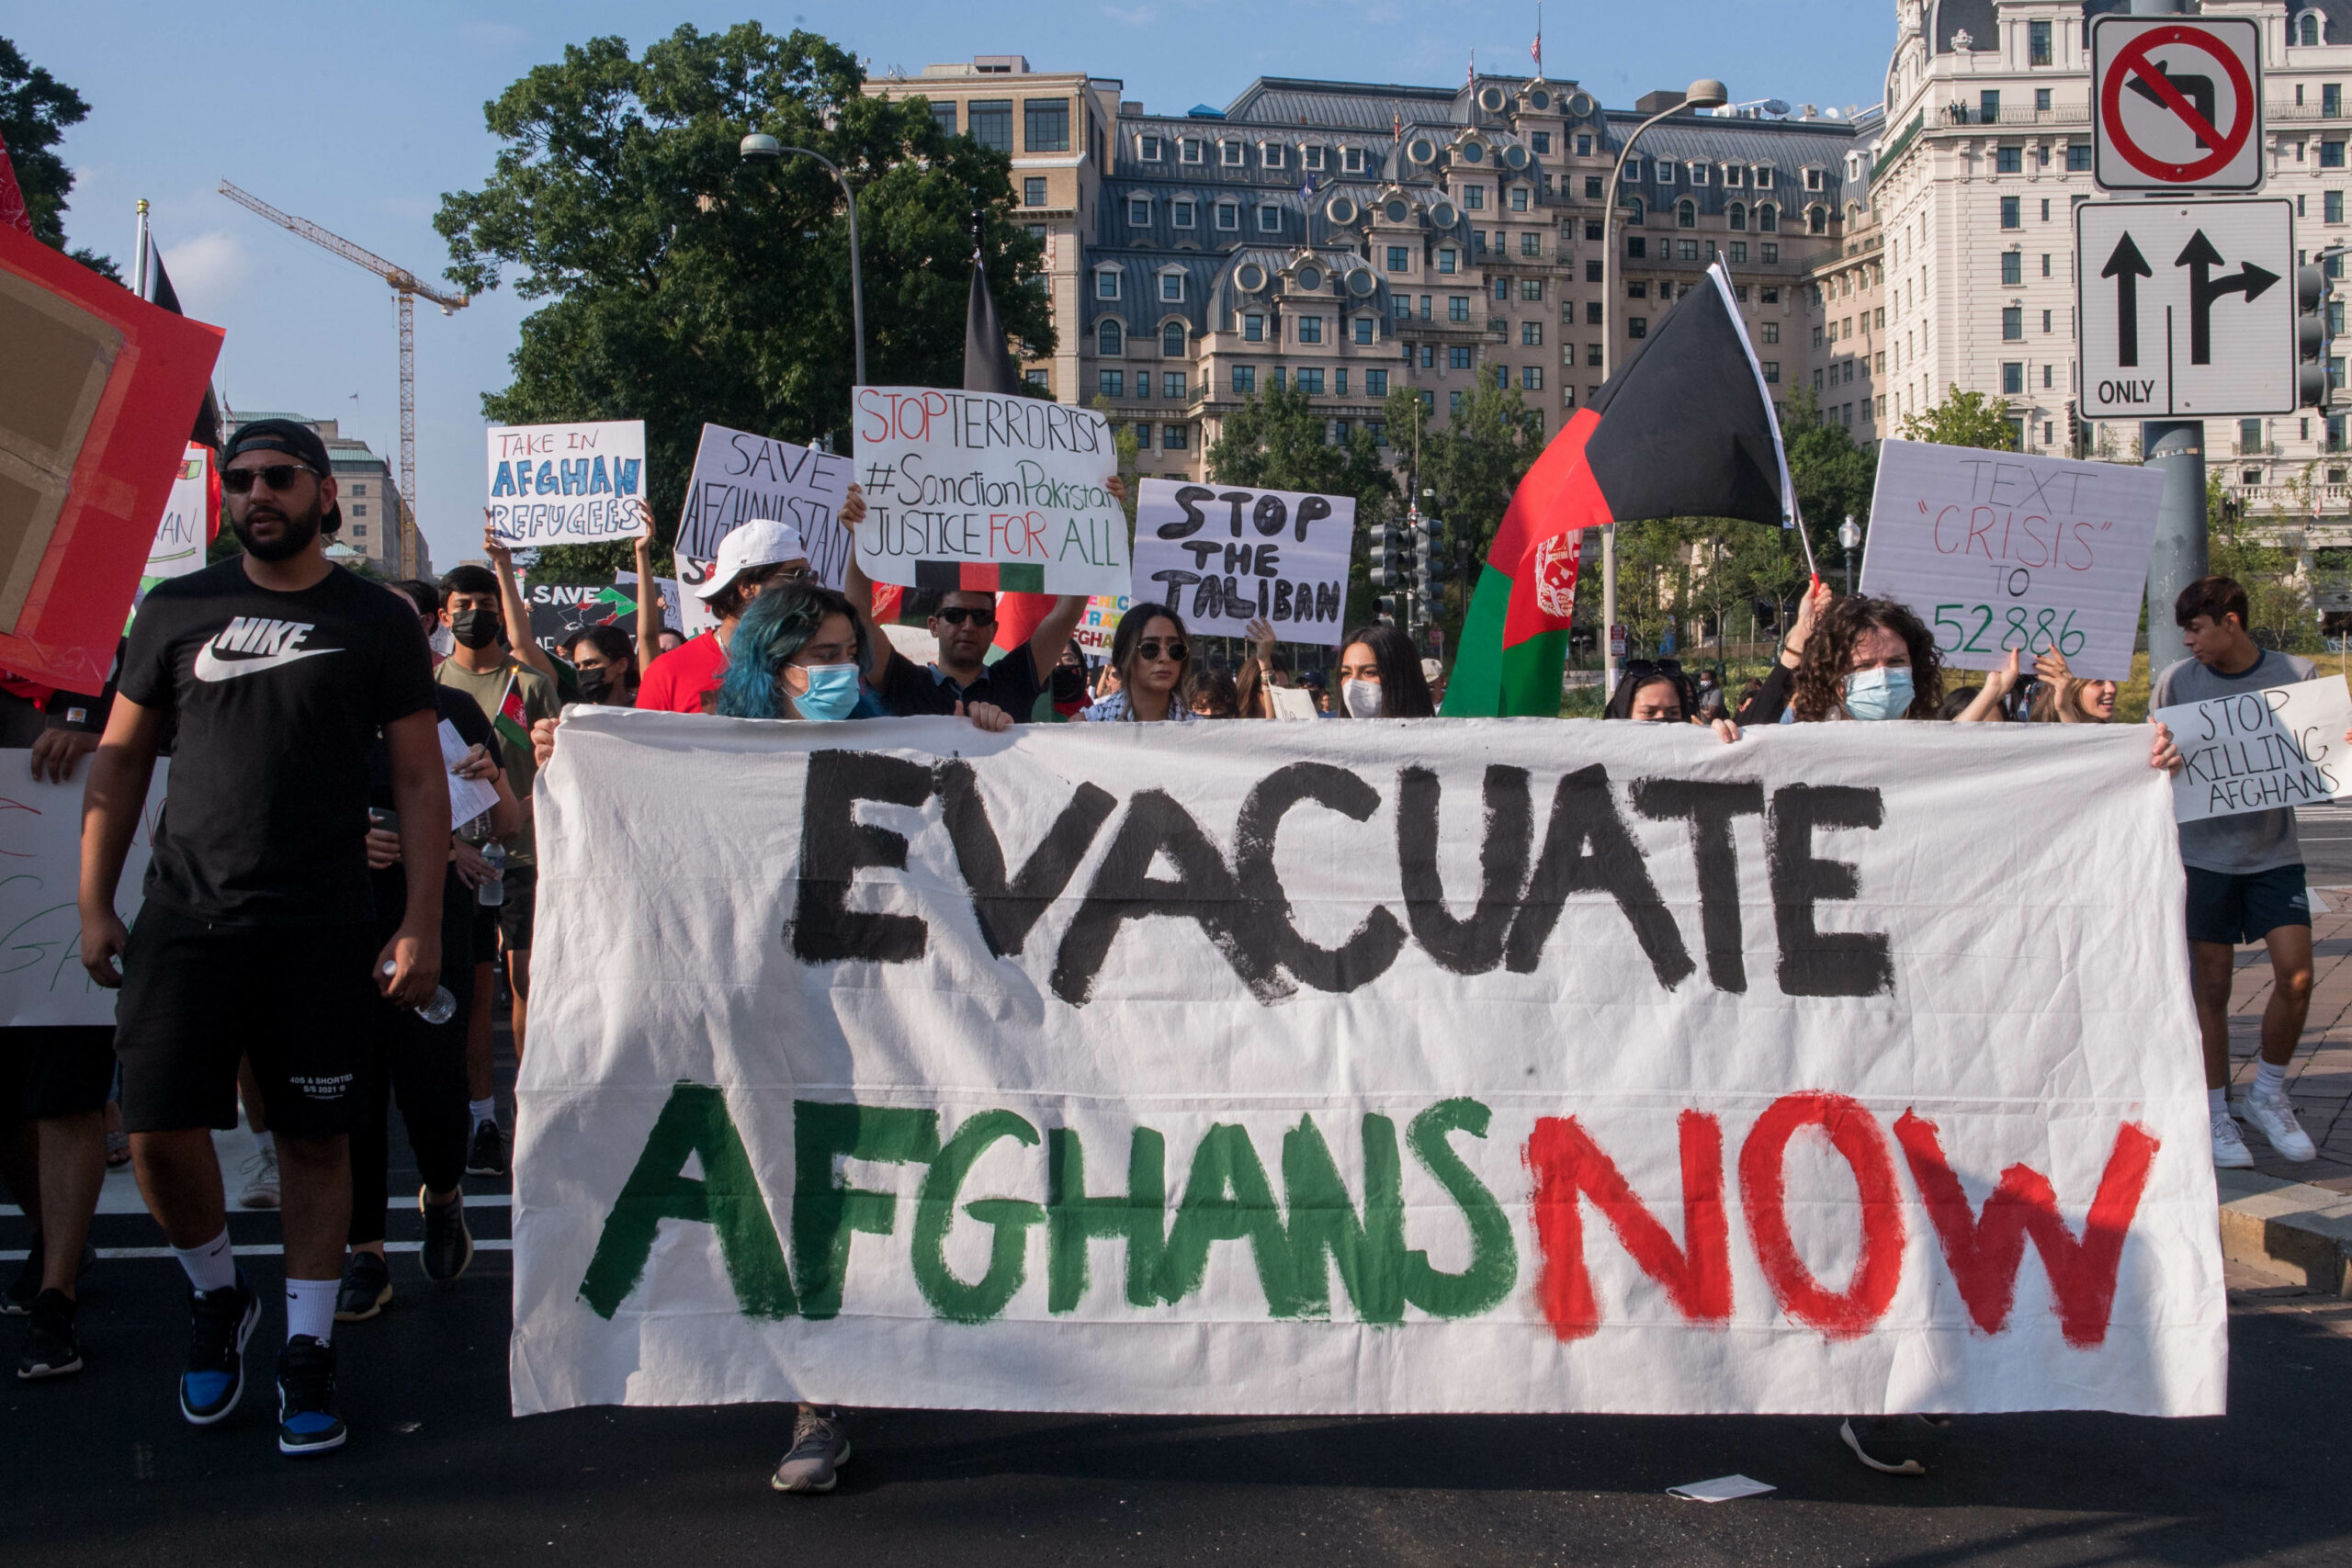 U.S. military has left Afghanistan; evacuation of Americans and Afghans moves into next phase